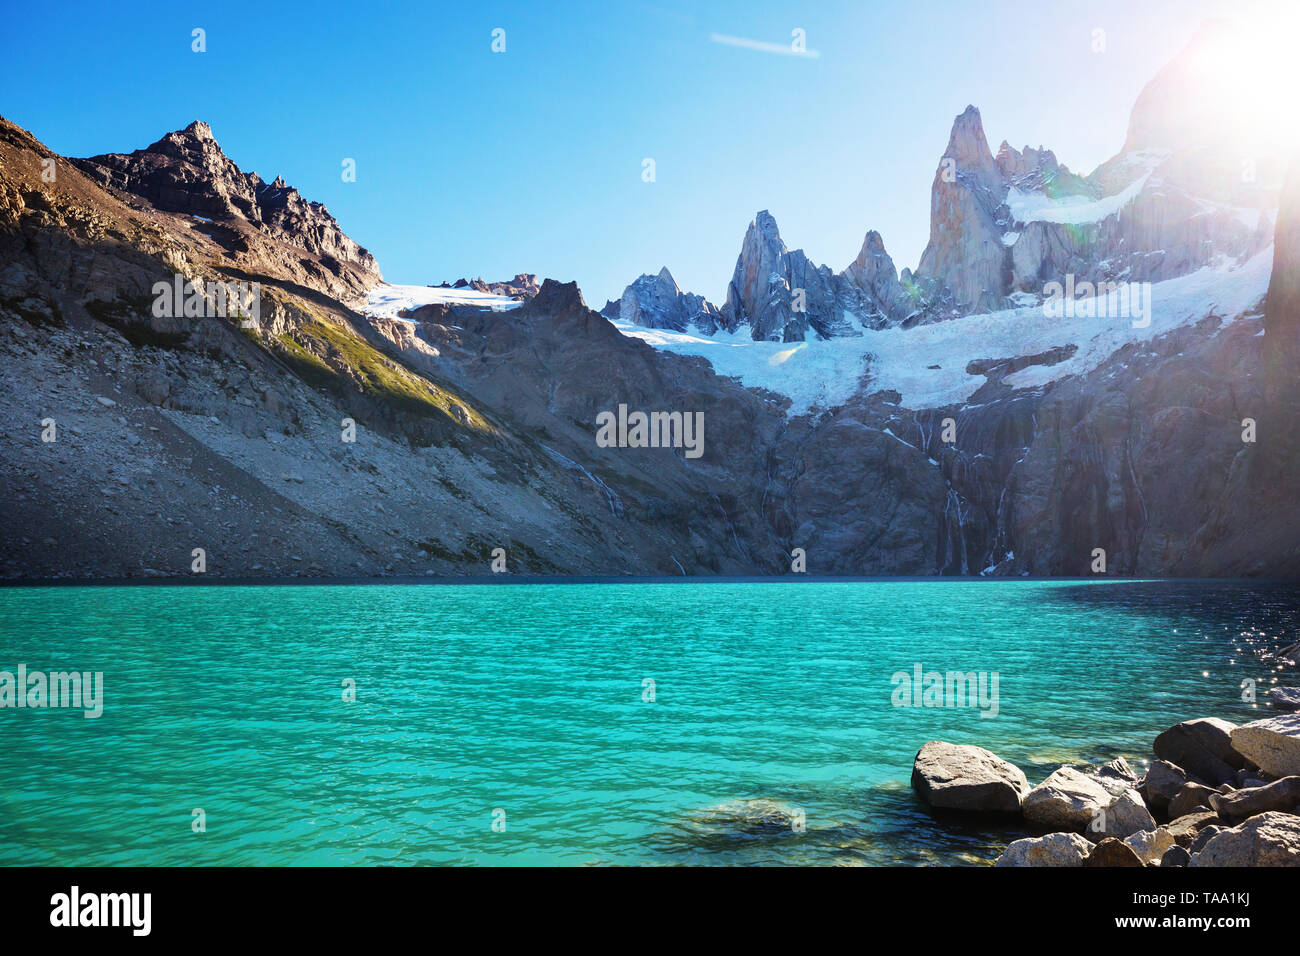 Patagonia landscapes in Southern Argentina - Stock Image